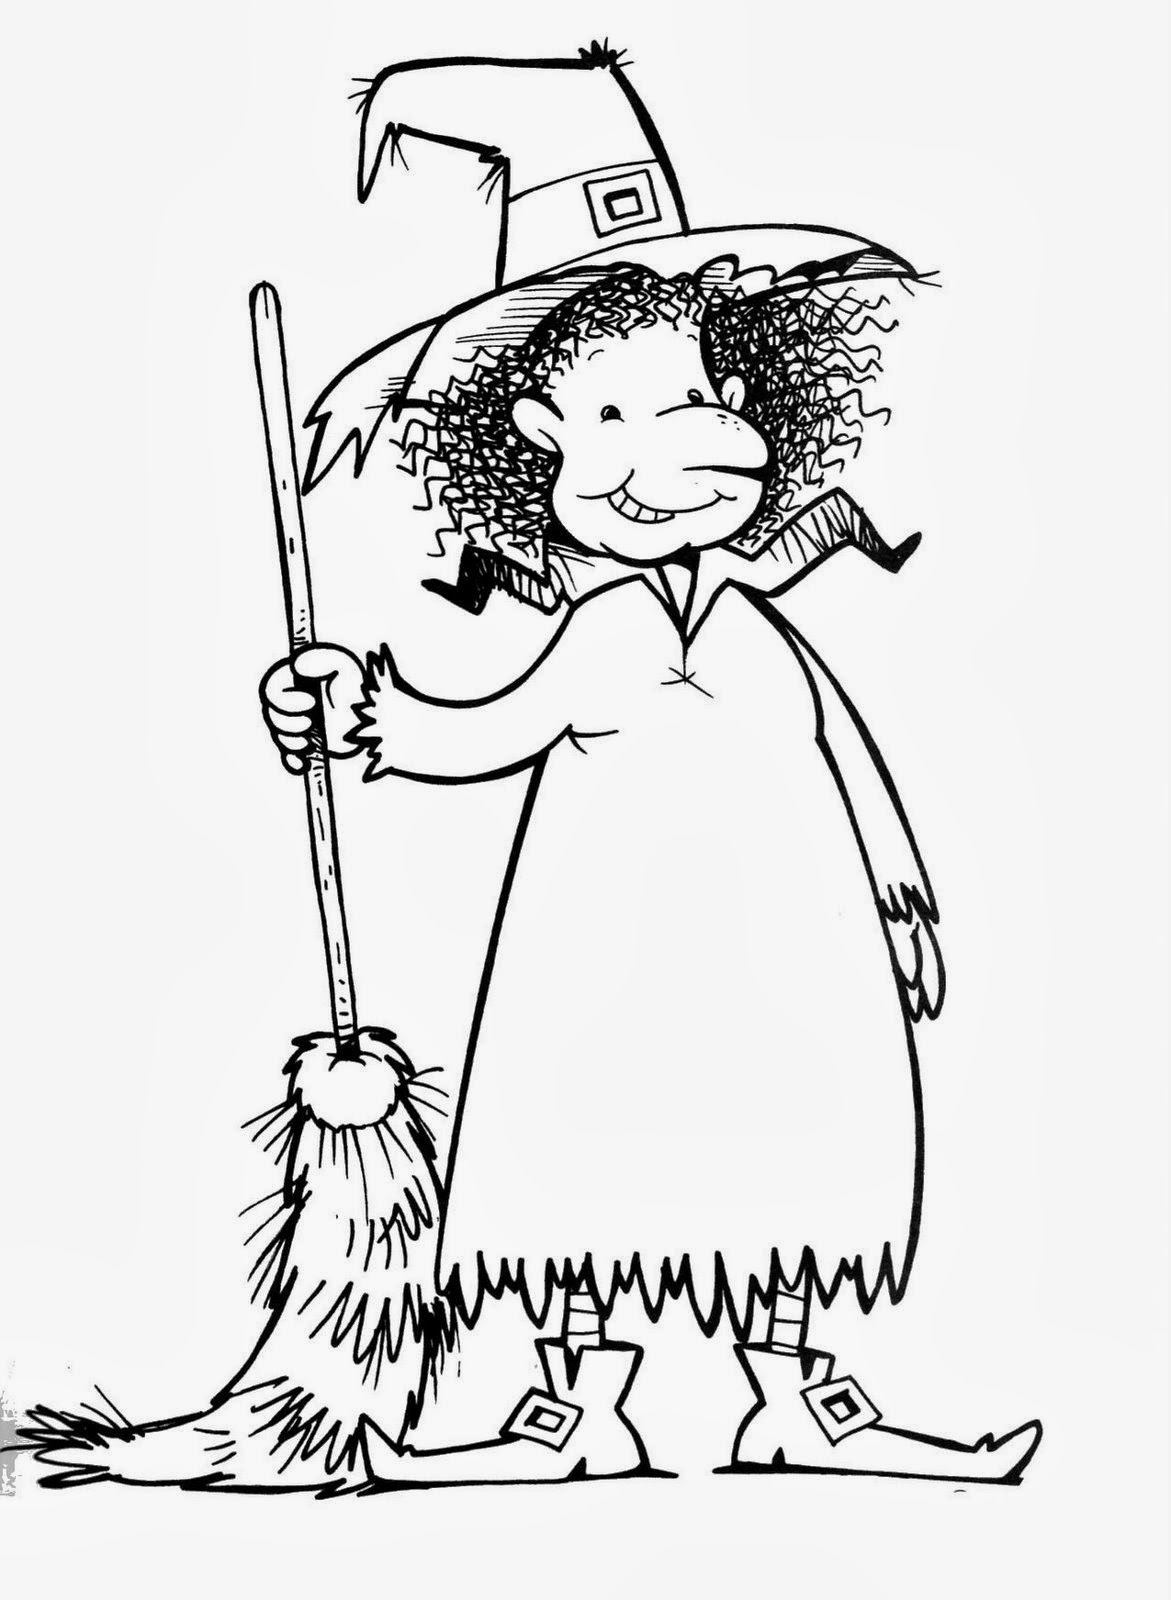 ImagesList.com: Halloween Witches for Coloring, part 4